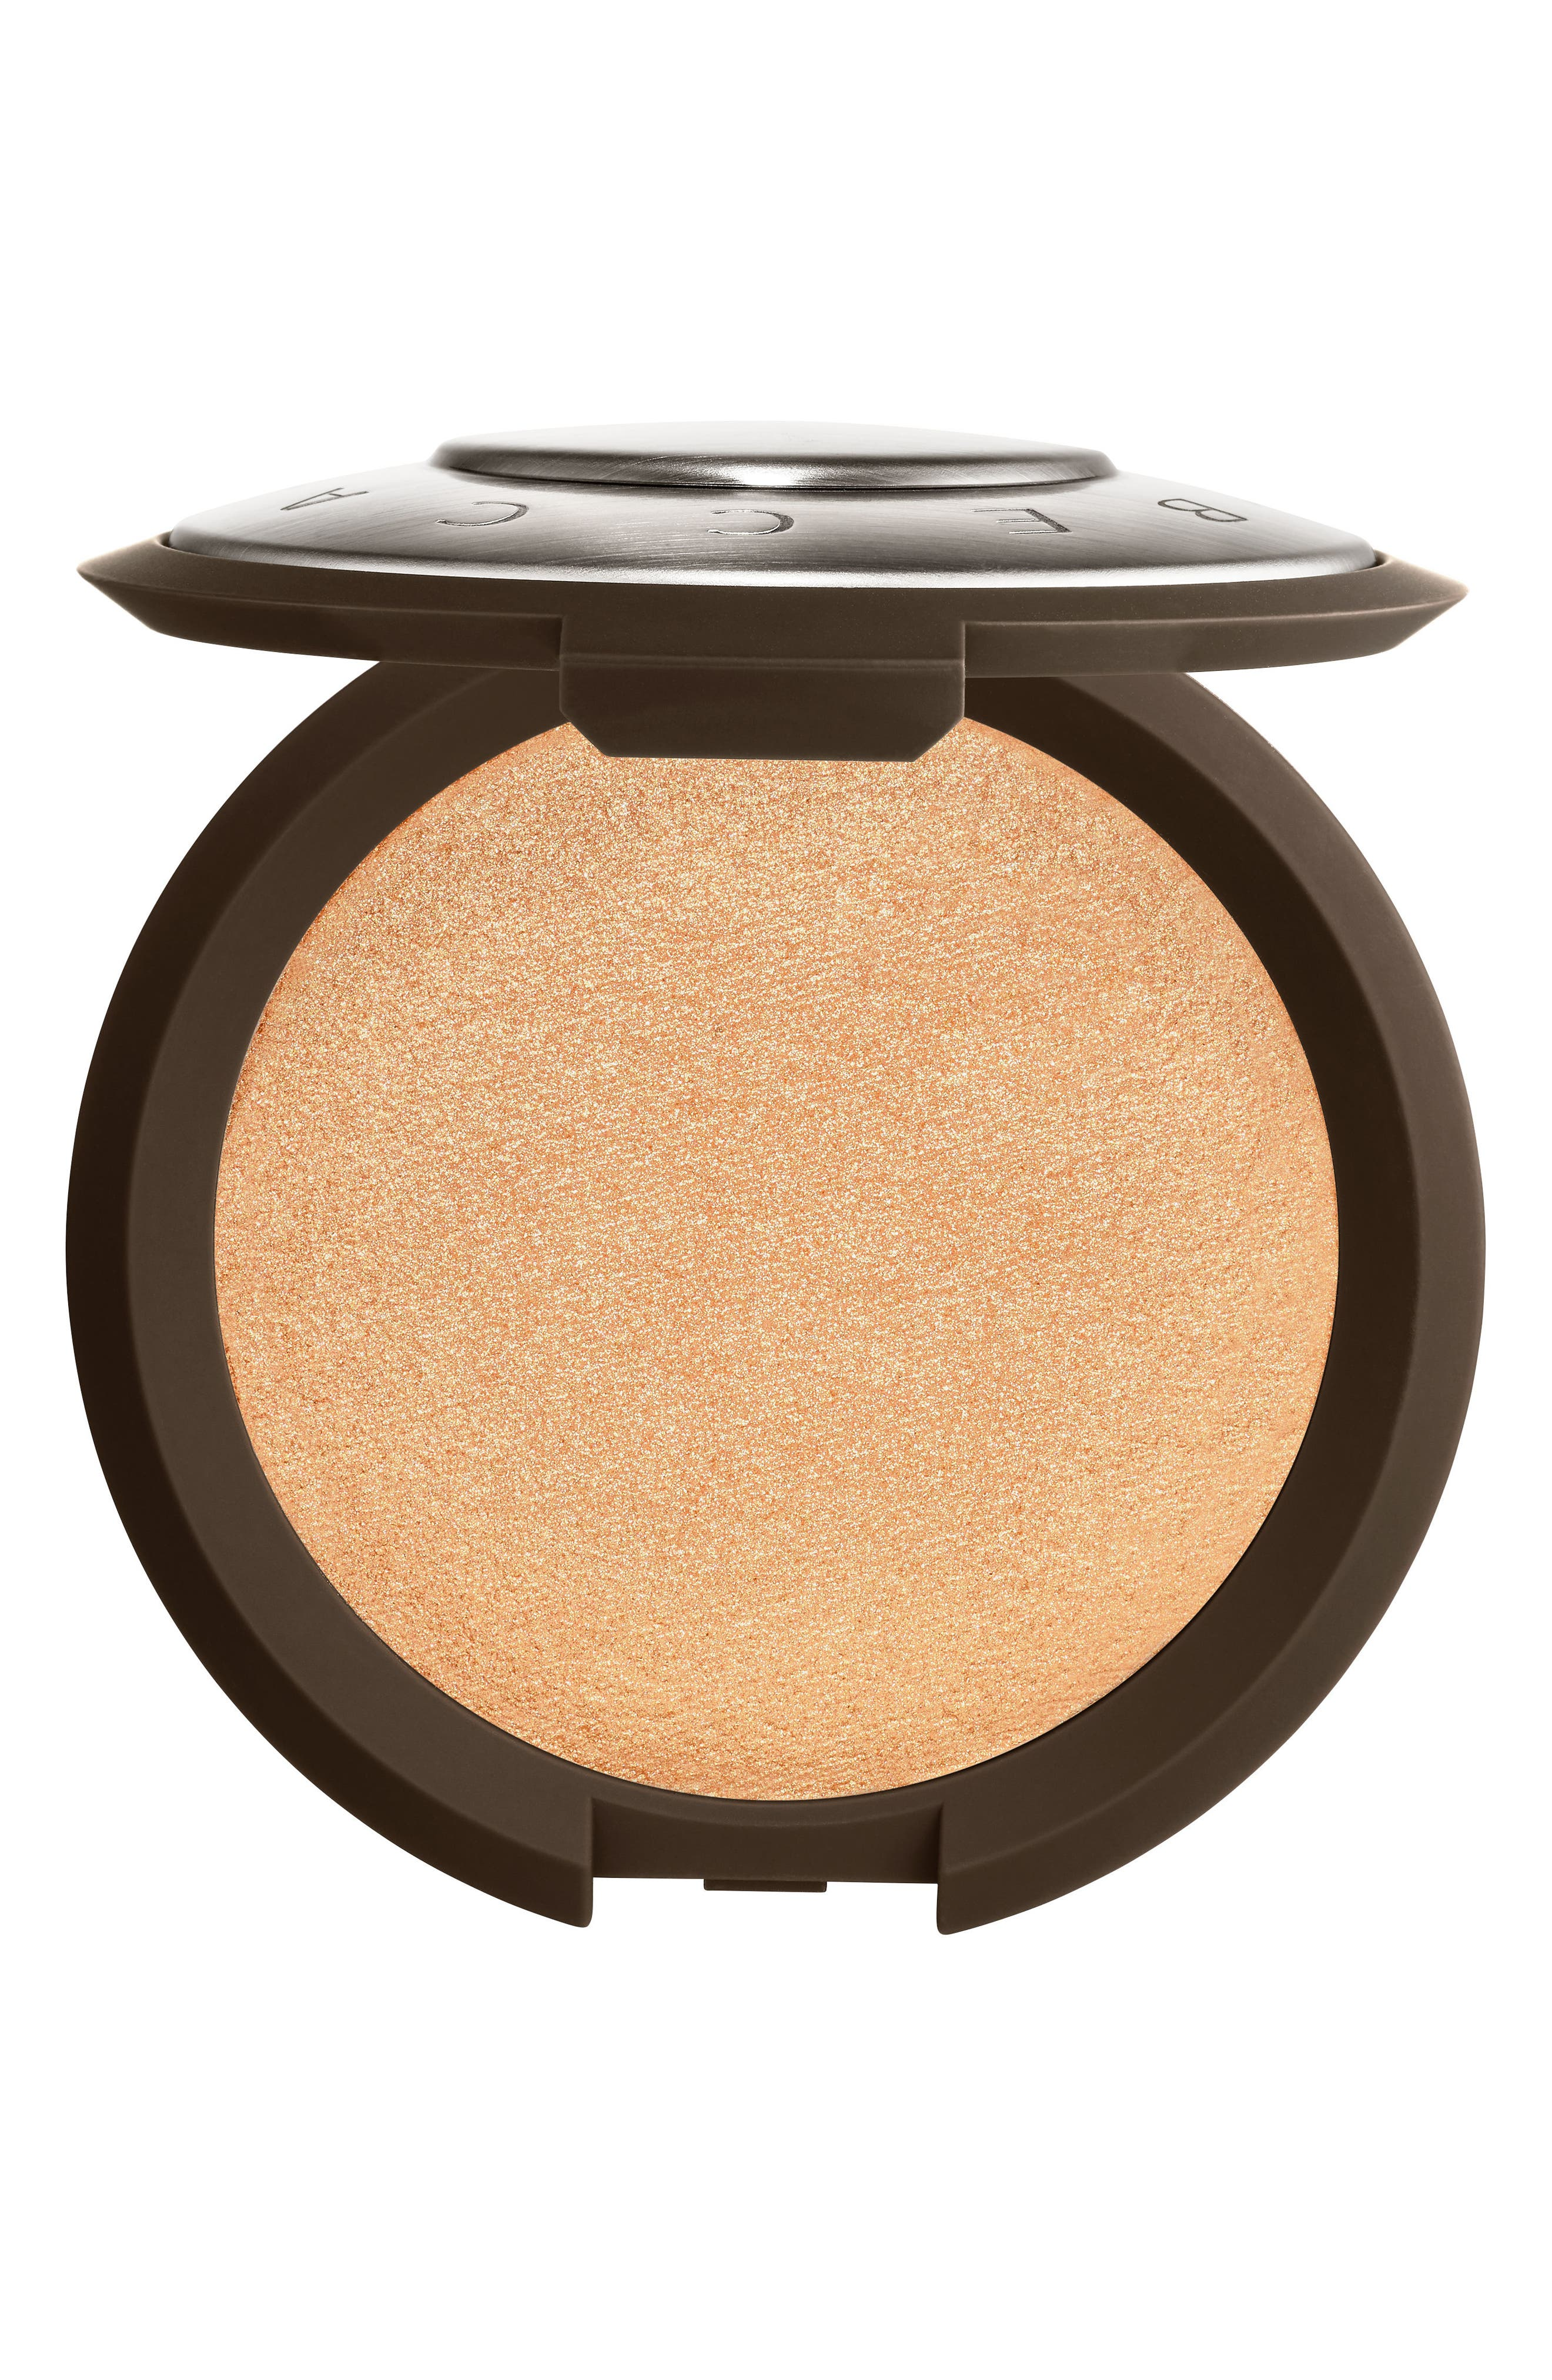 BECCA Shimmering Skin Perfector Pressed Highlighter,                             Main thumbnail 1, color,                             CHAMPAGNE POP